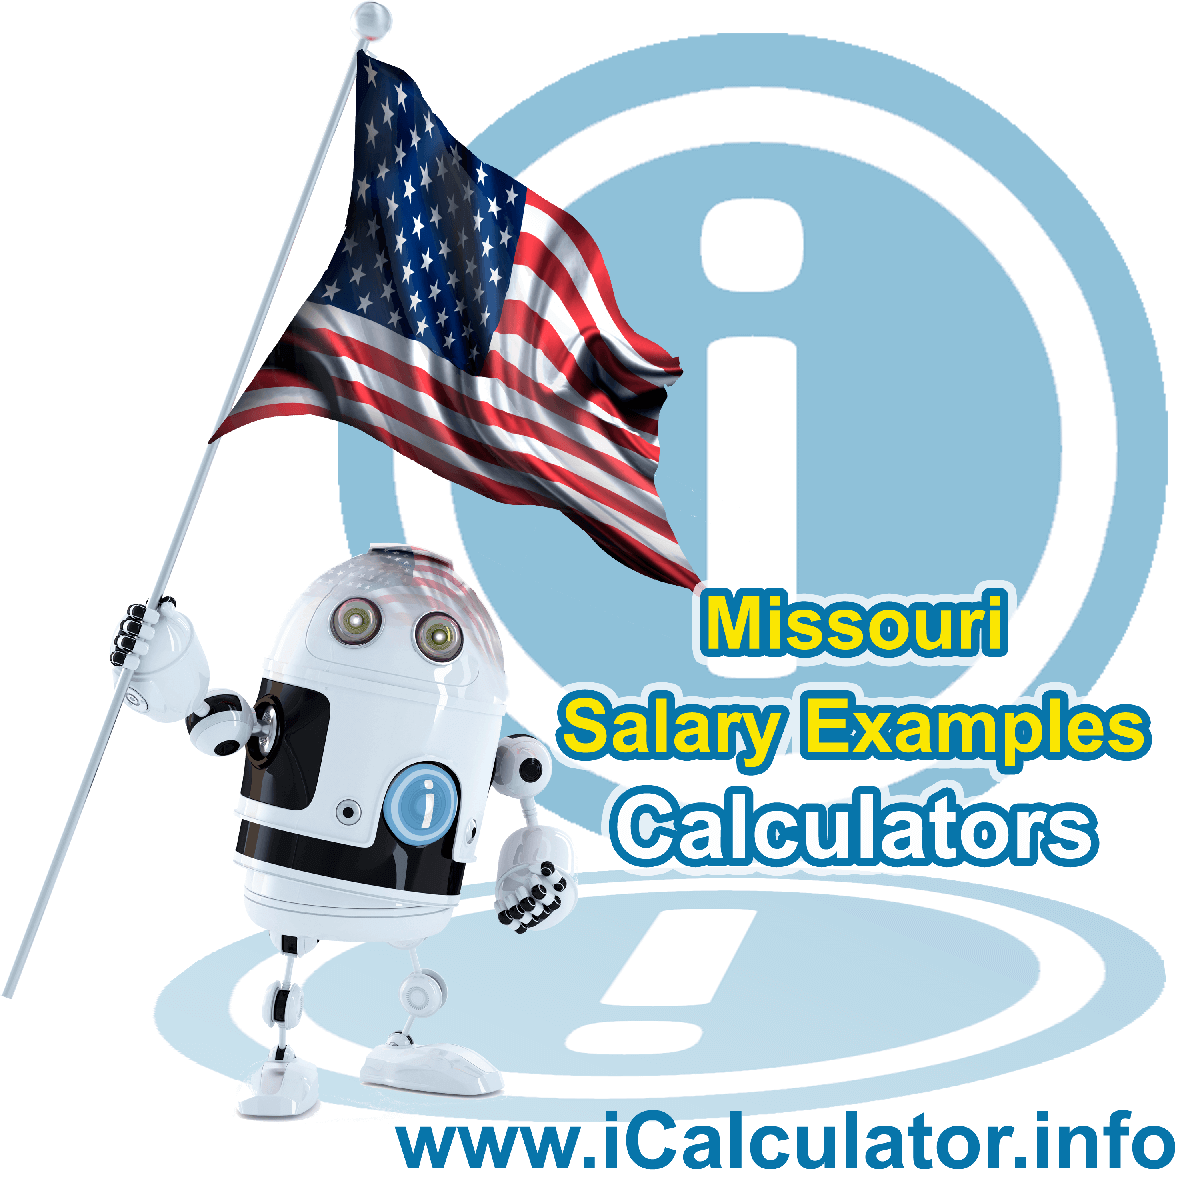 Missouri Salary Example for $240.00 in 2020 | iCalculator | $240.00 salary example for employee and employer paying Missouri State tincome taxes. Detailed salary after tax calculation including Missouri State Tax, Federal State Tax, Medicare Deductions, Social Security, Capital Gains and other income tax and salary deductions complete with supporting Missouri state tax tables